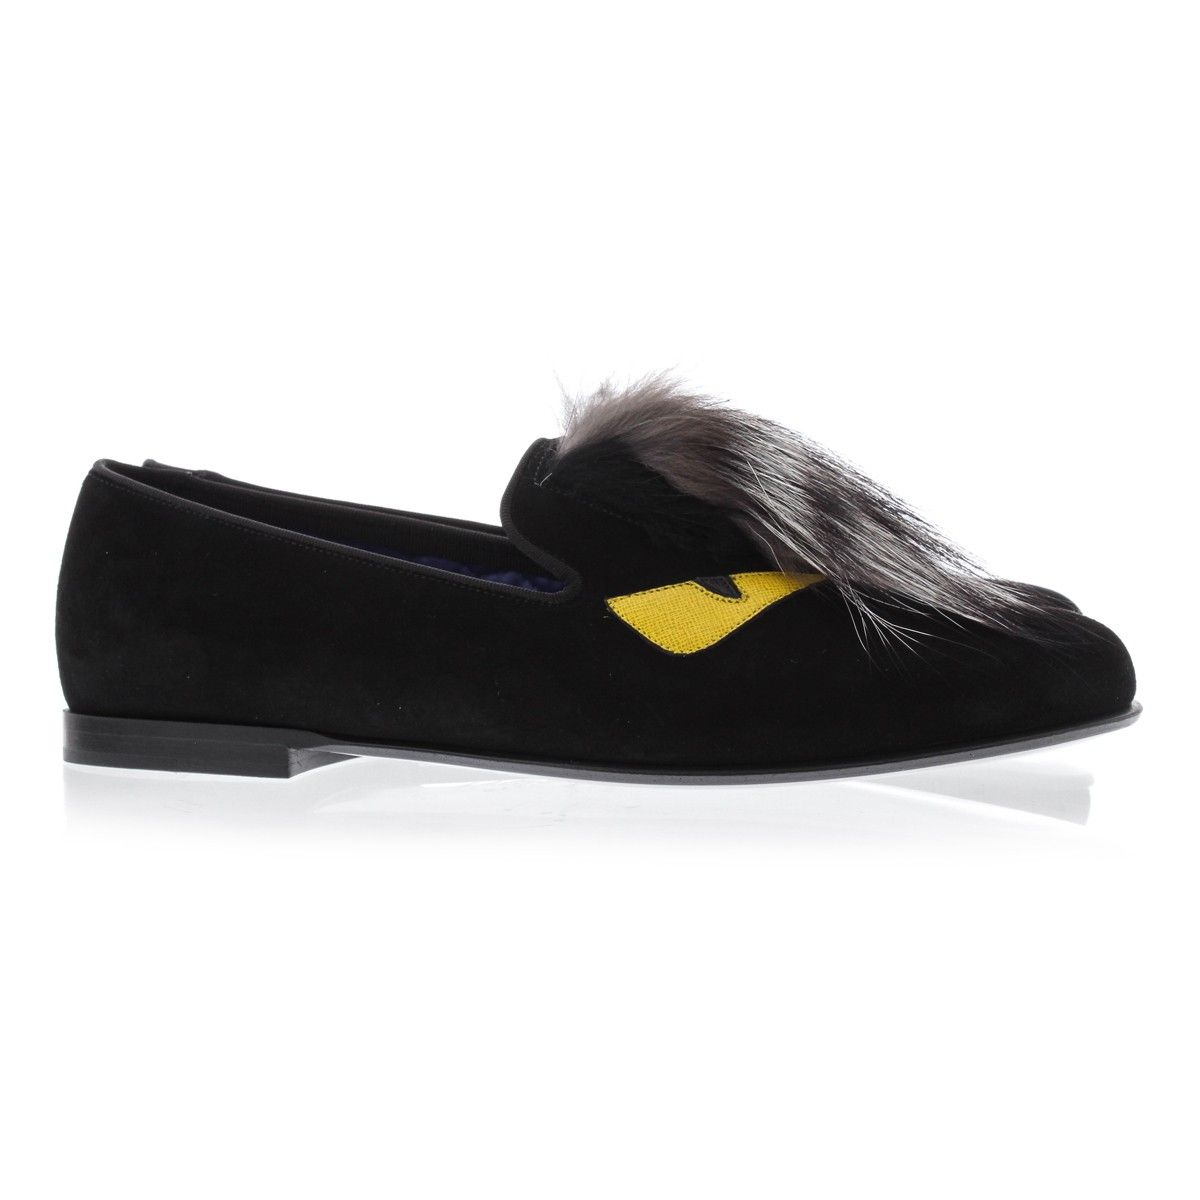 416e3a88 Fendi monster slipper Fendi monster slipper | Mens Shoes | Monster ...